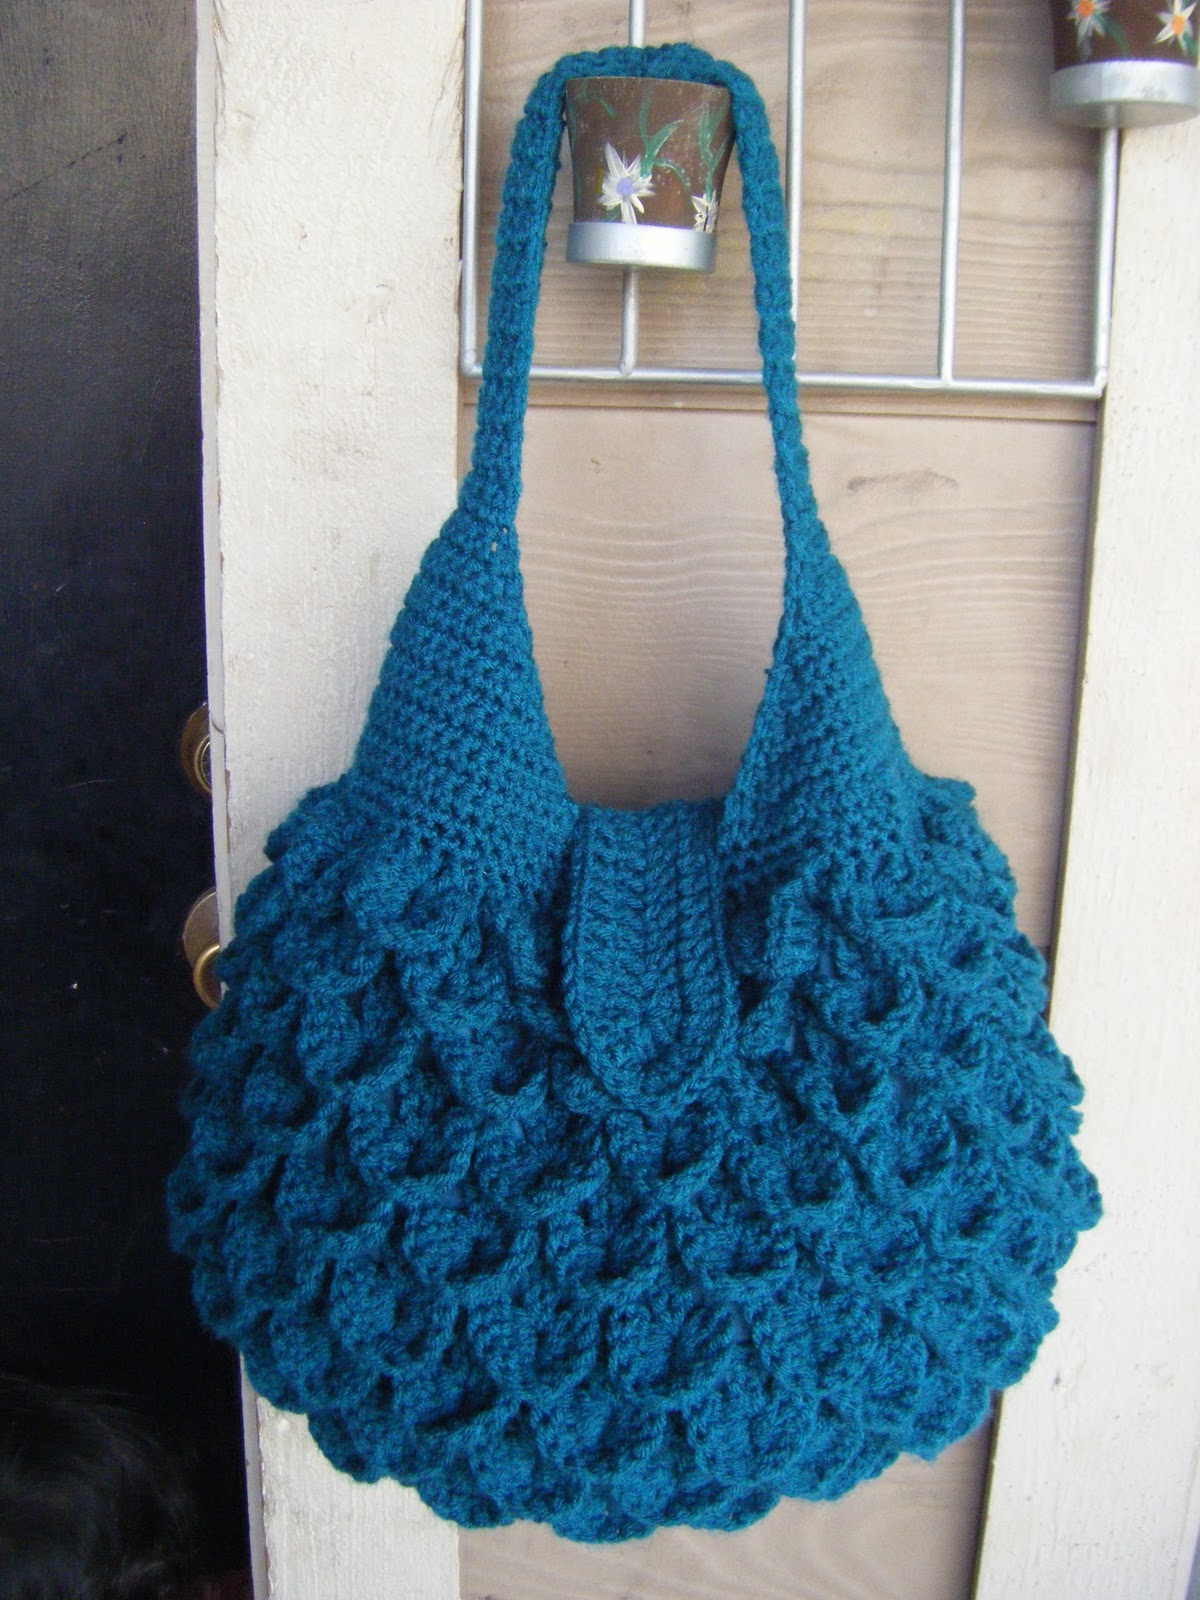 Crochet Communion Bag Pattern : FREE THREAD CROCHET PURSE PATTERNS ? Easy Crochet Patterns